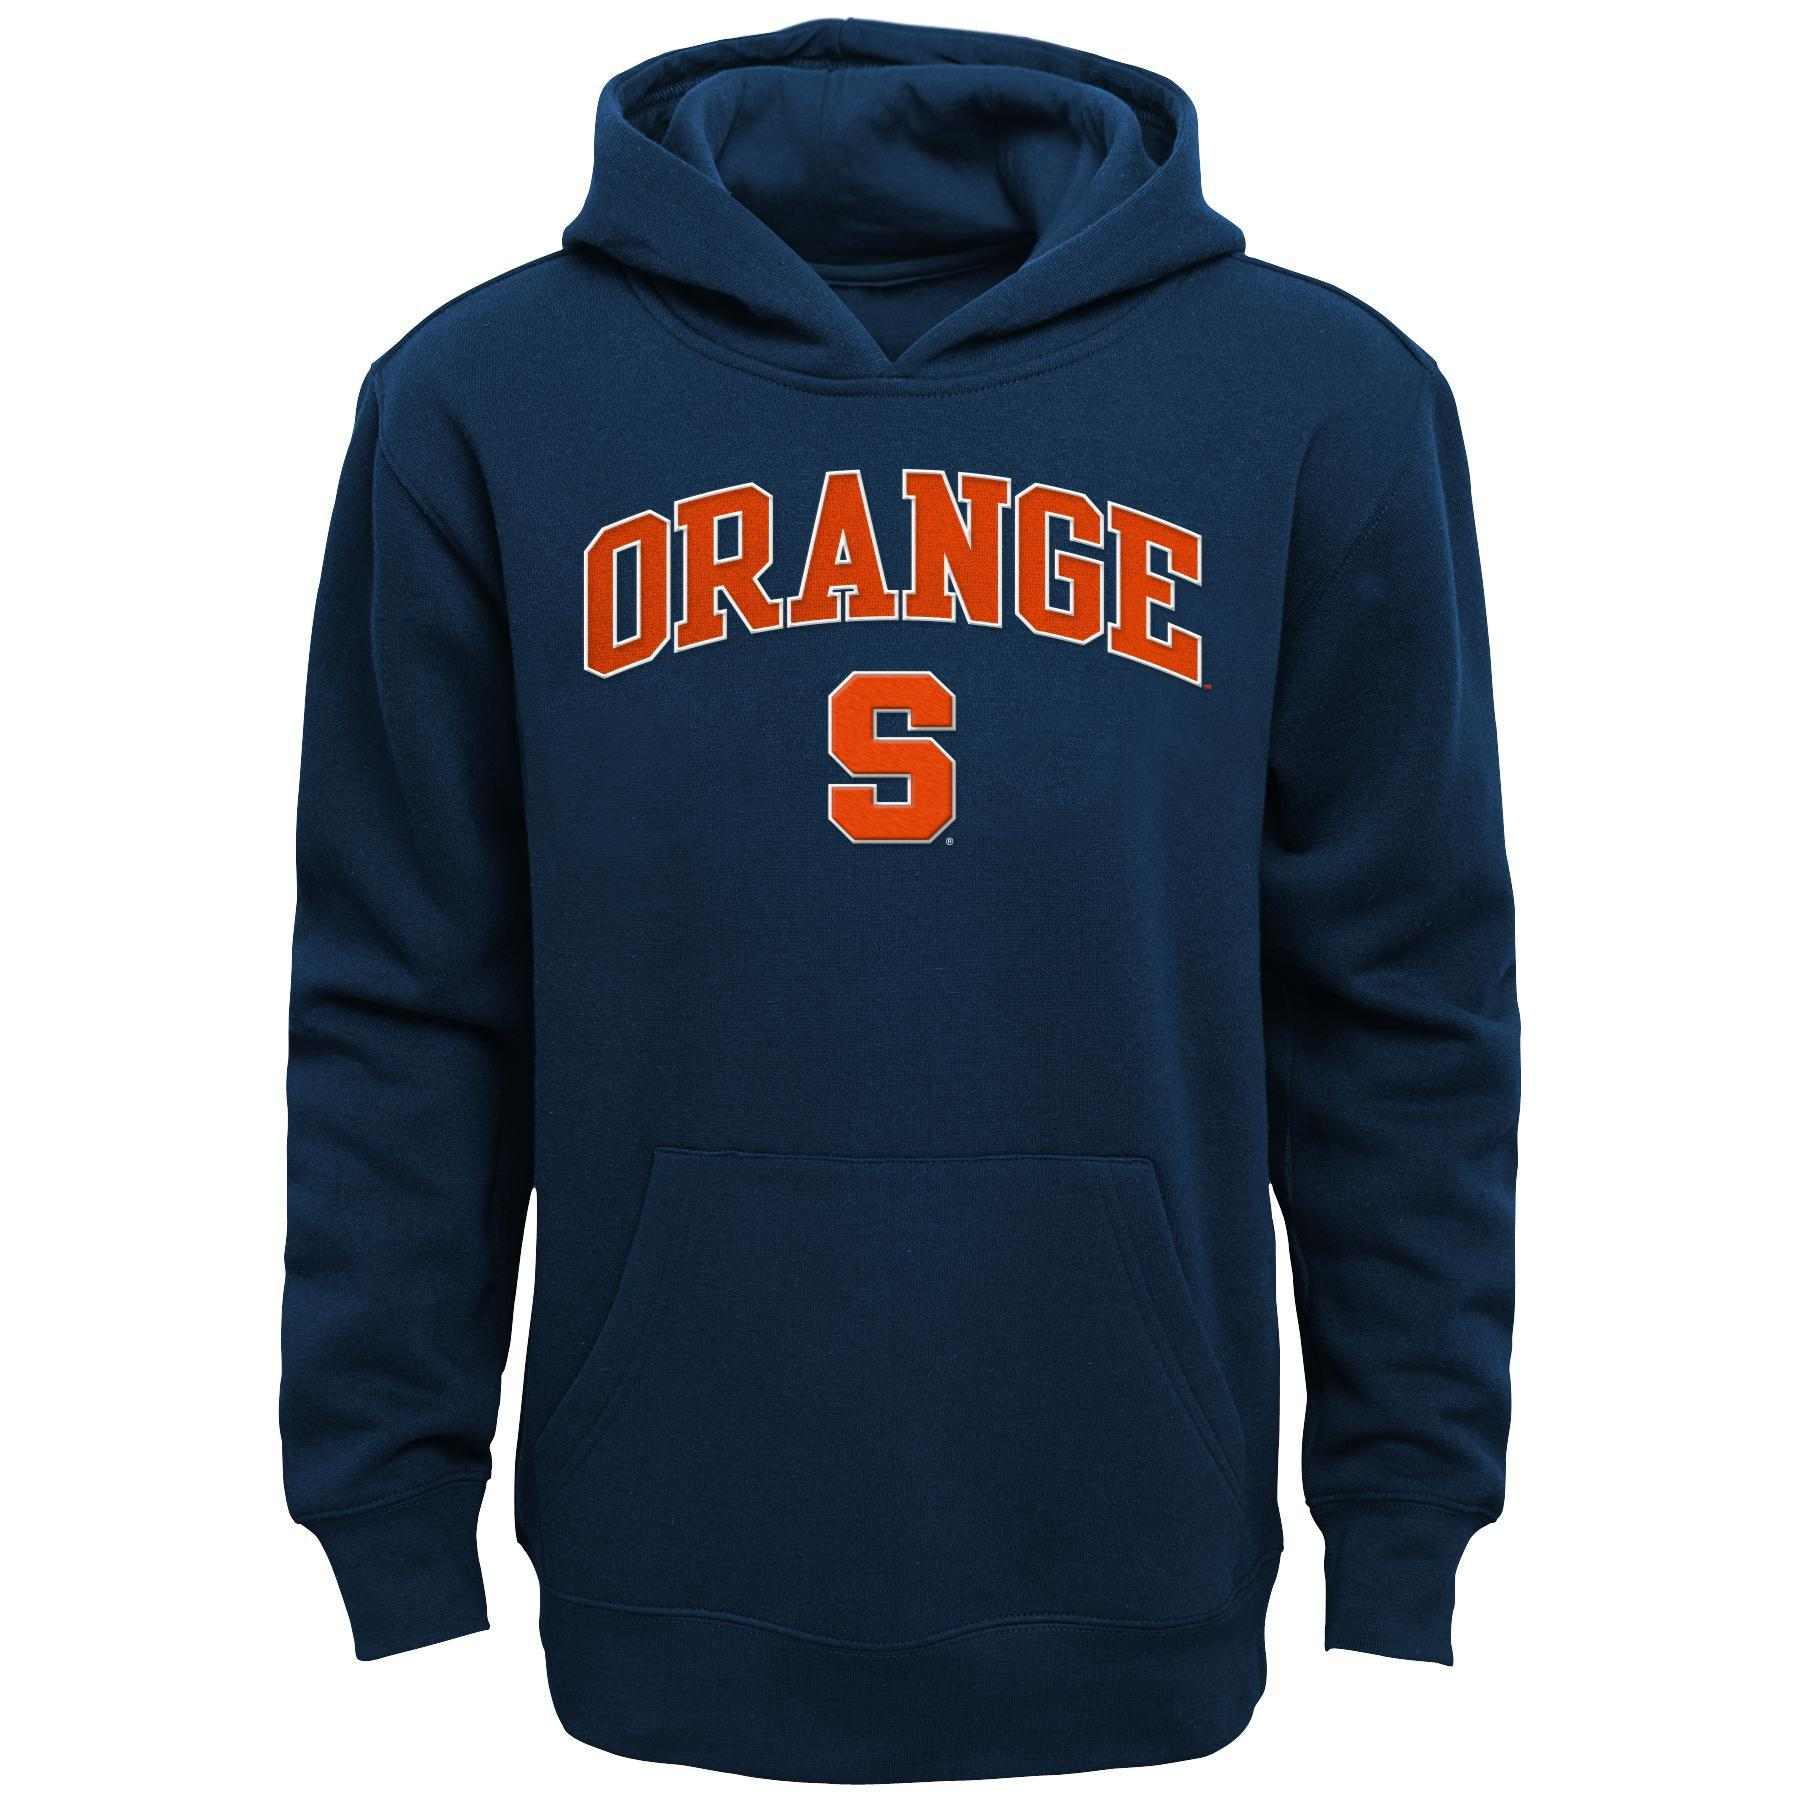 NCAA Boys' Hoodie - Syracuse University Orange PartNumber: 046VA92284712P MfgPartNumber: 48B8S-16